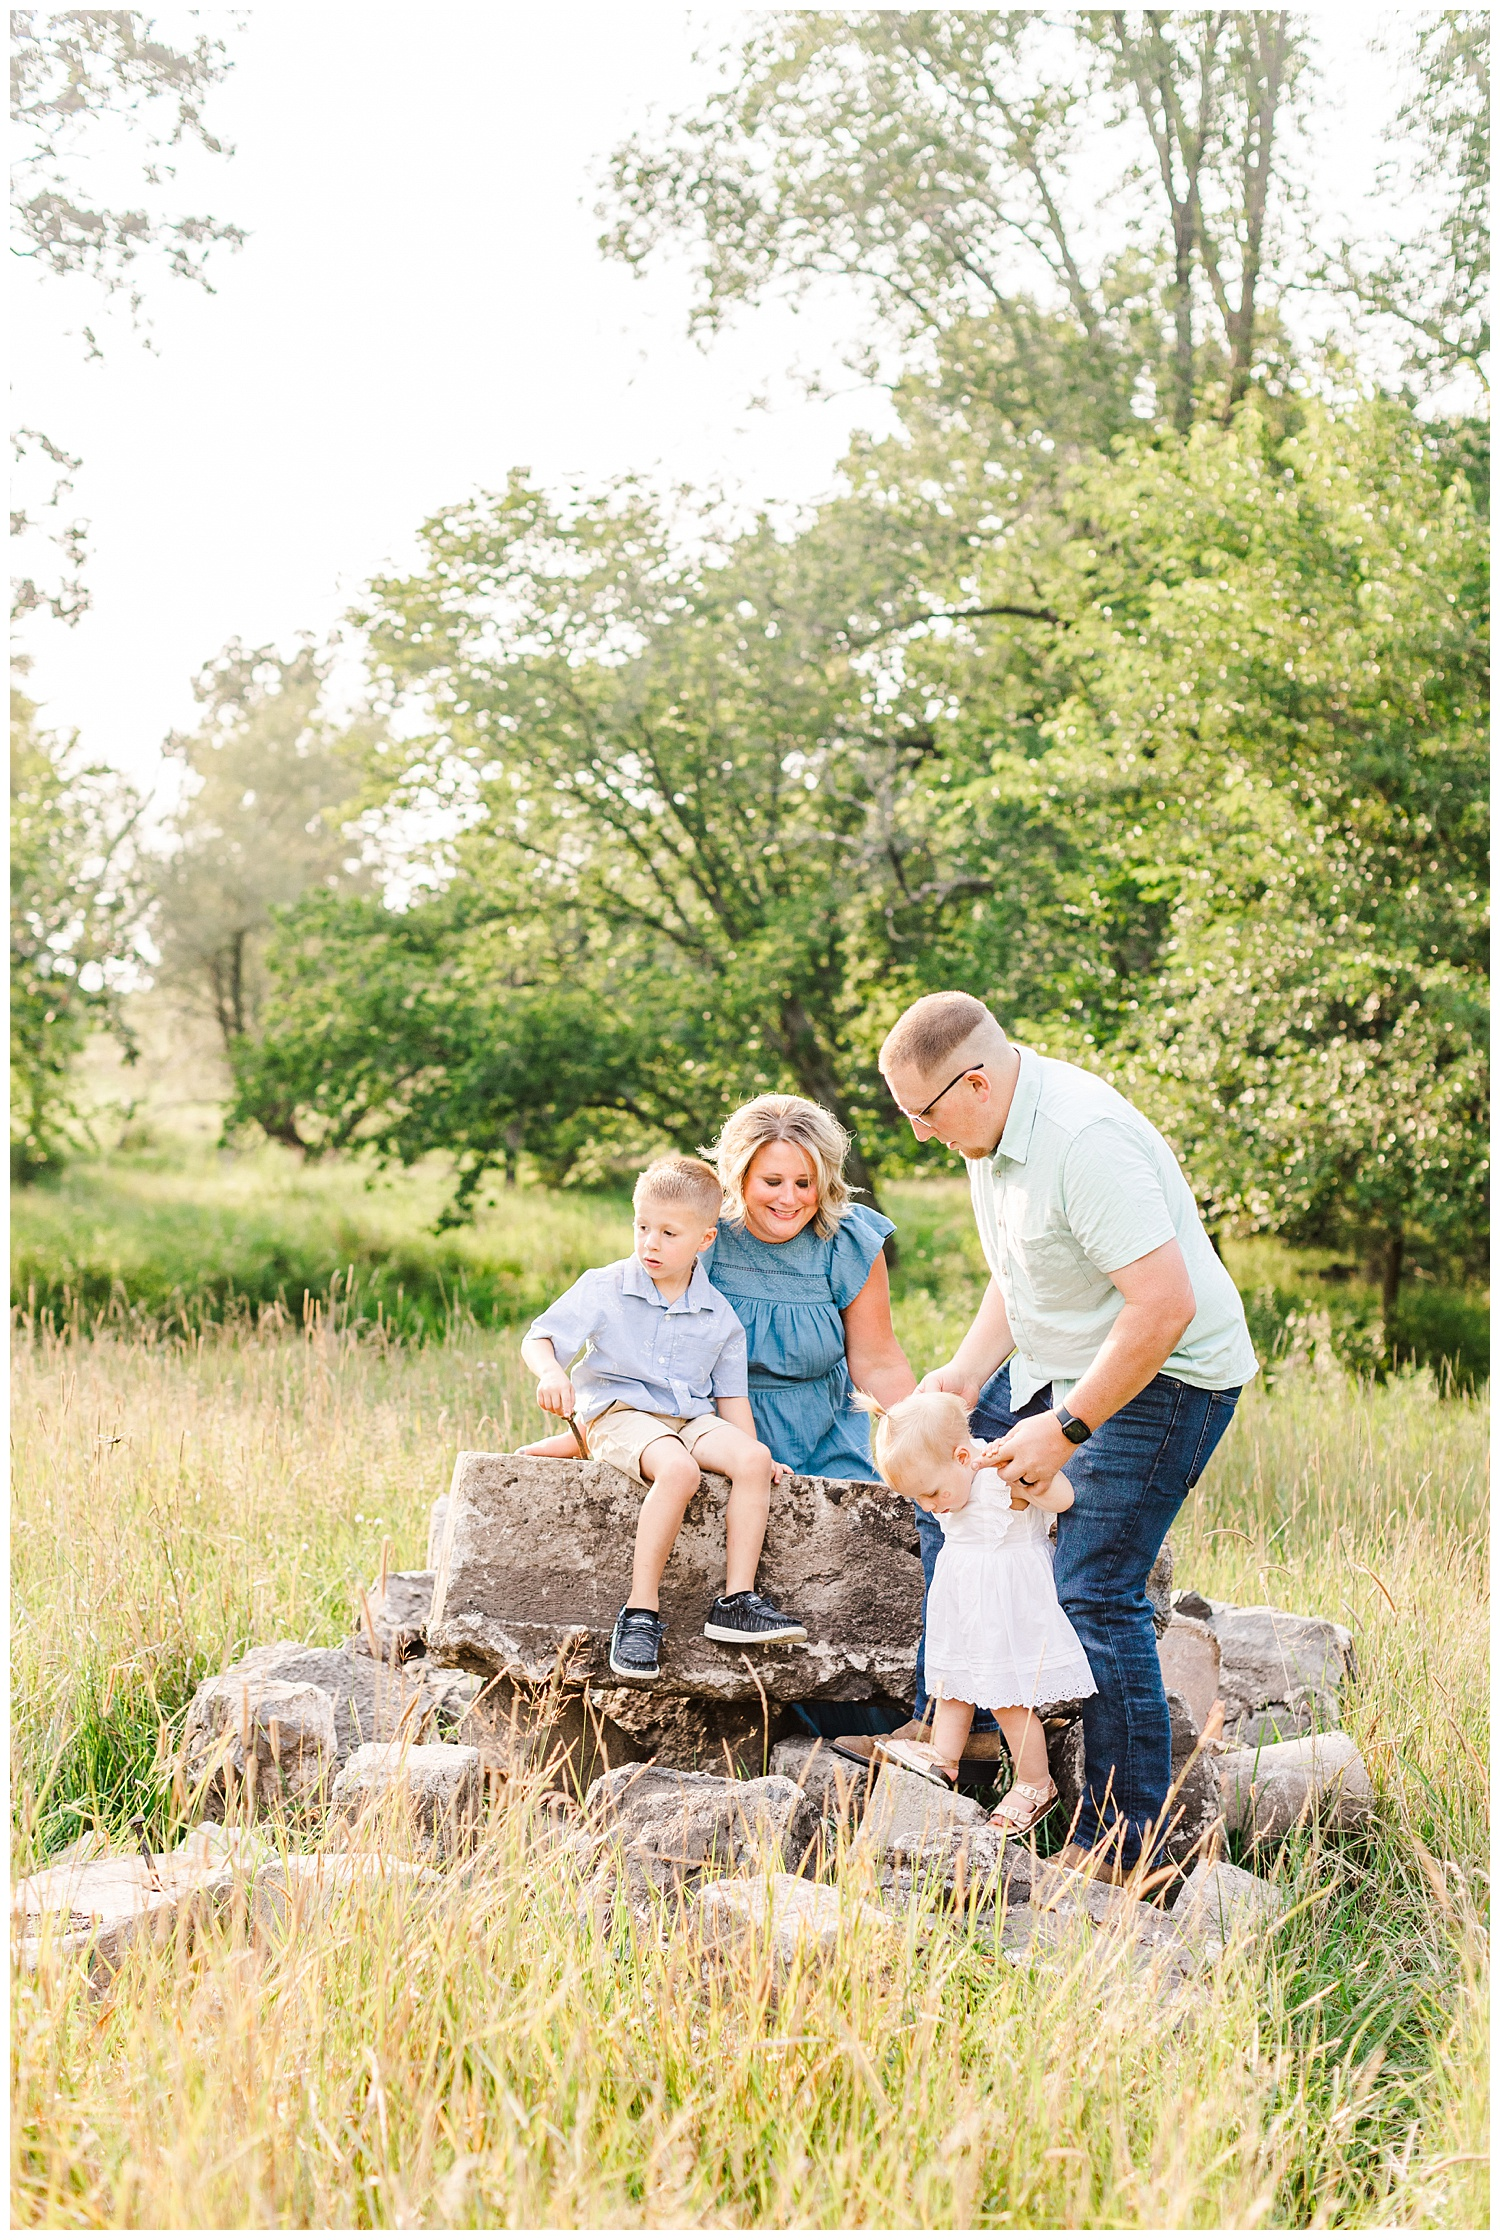 The Bruhn family play together in a grassy pasture in Iowa | CB Studio